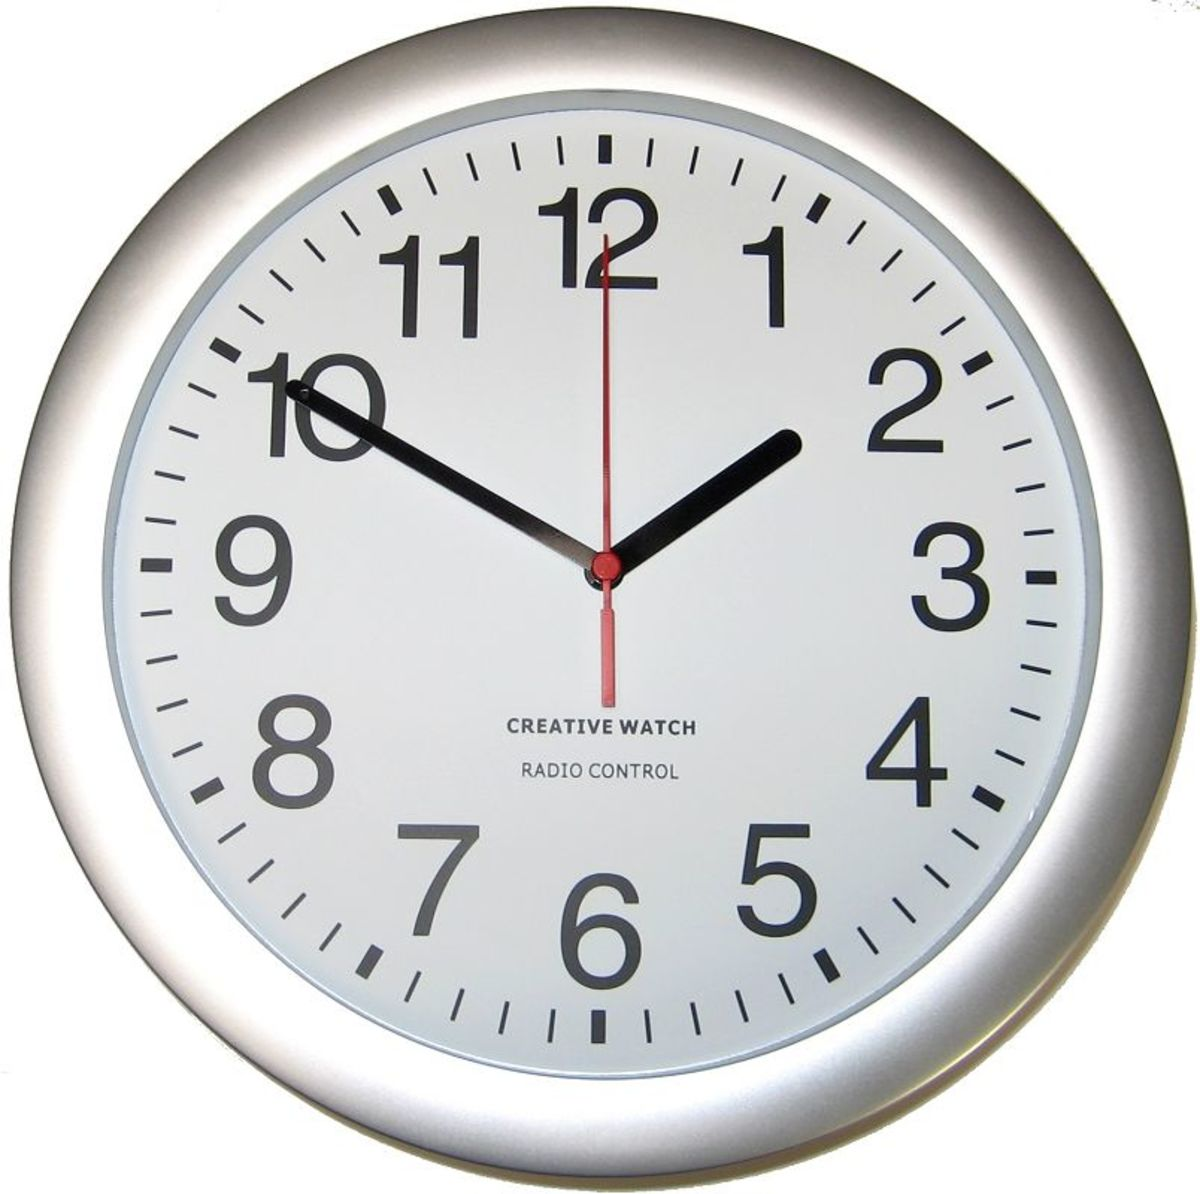 time required for recording and studio costs if any